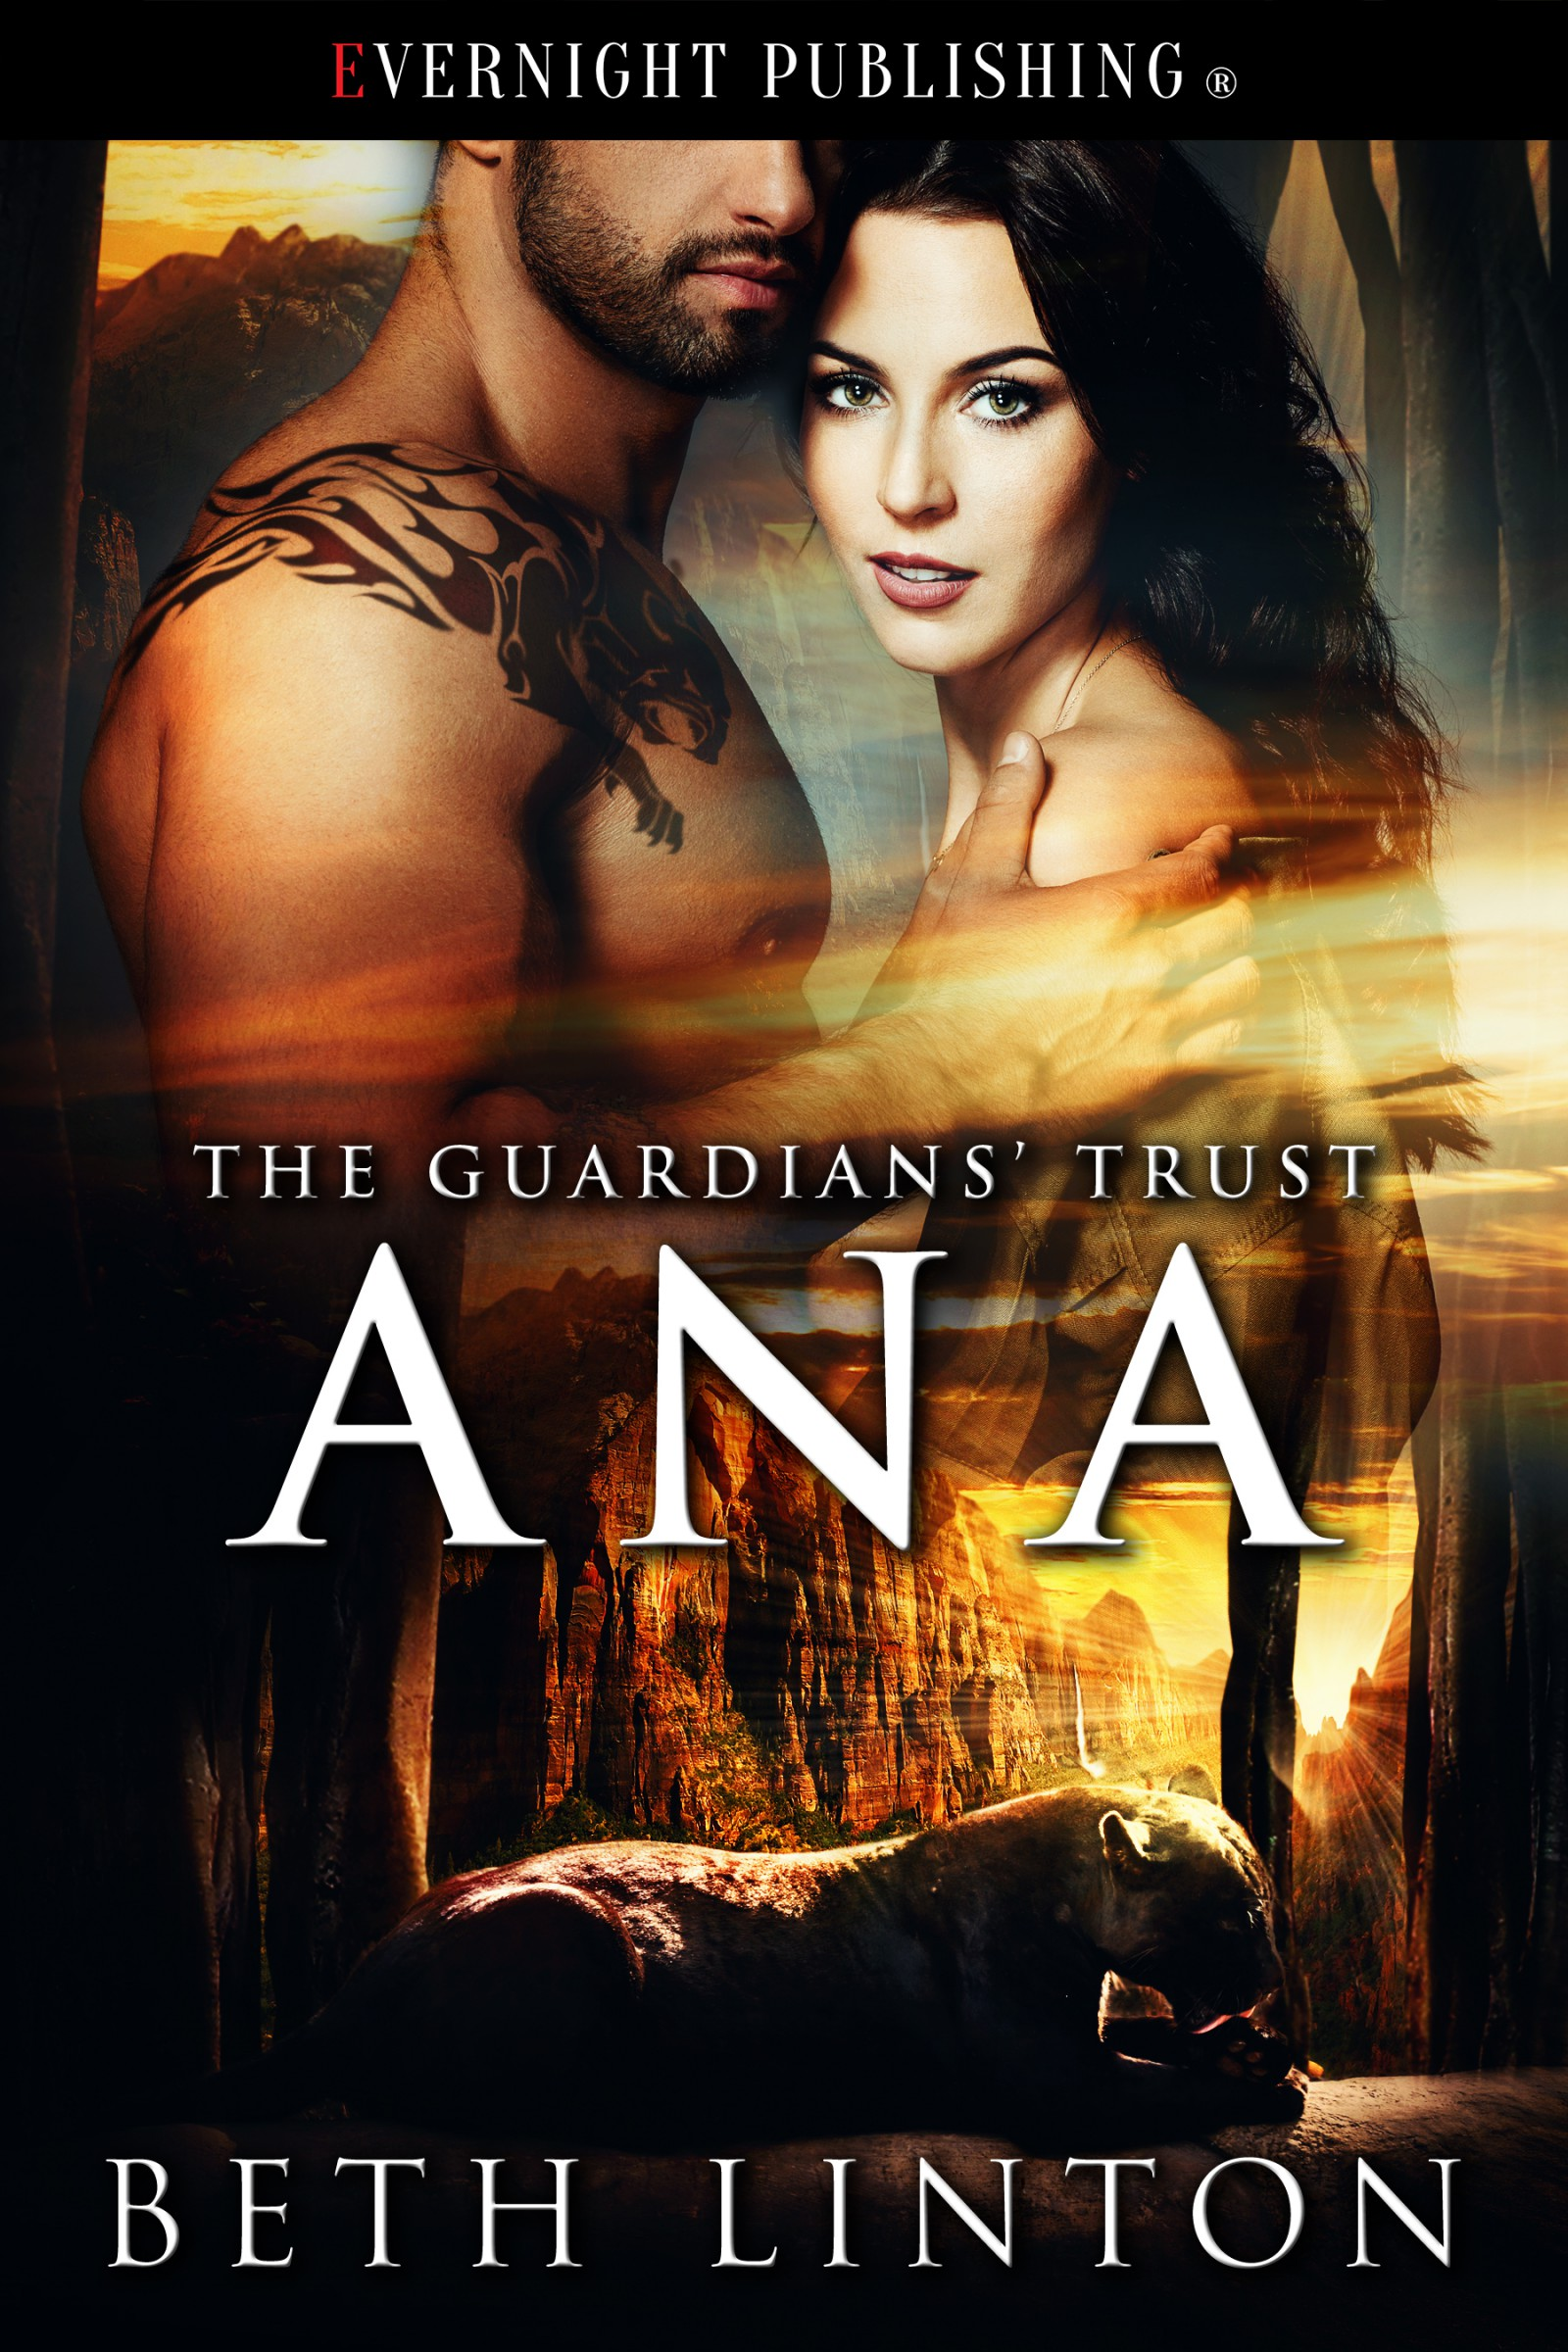 The cover of Beth Linton's first book The Guardians' Trust: Anna.